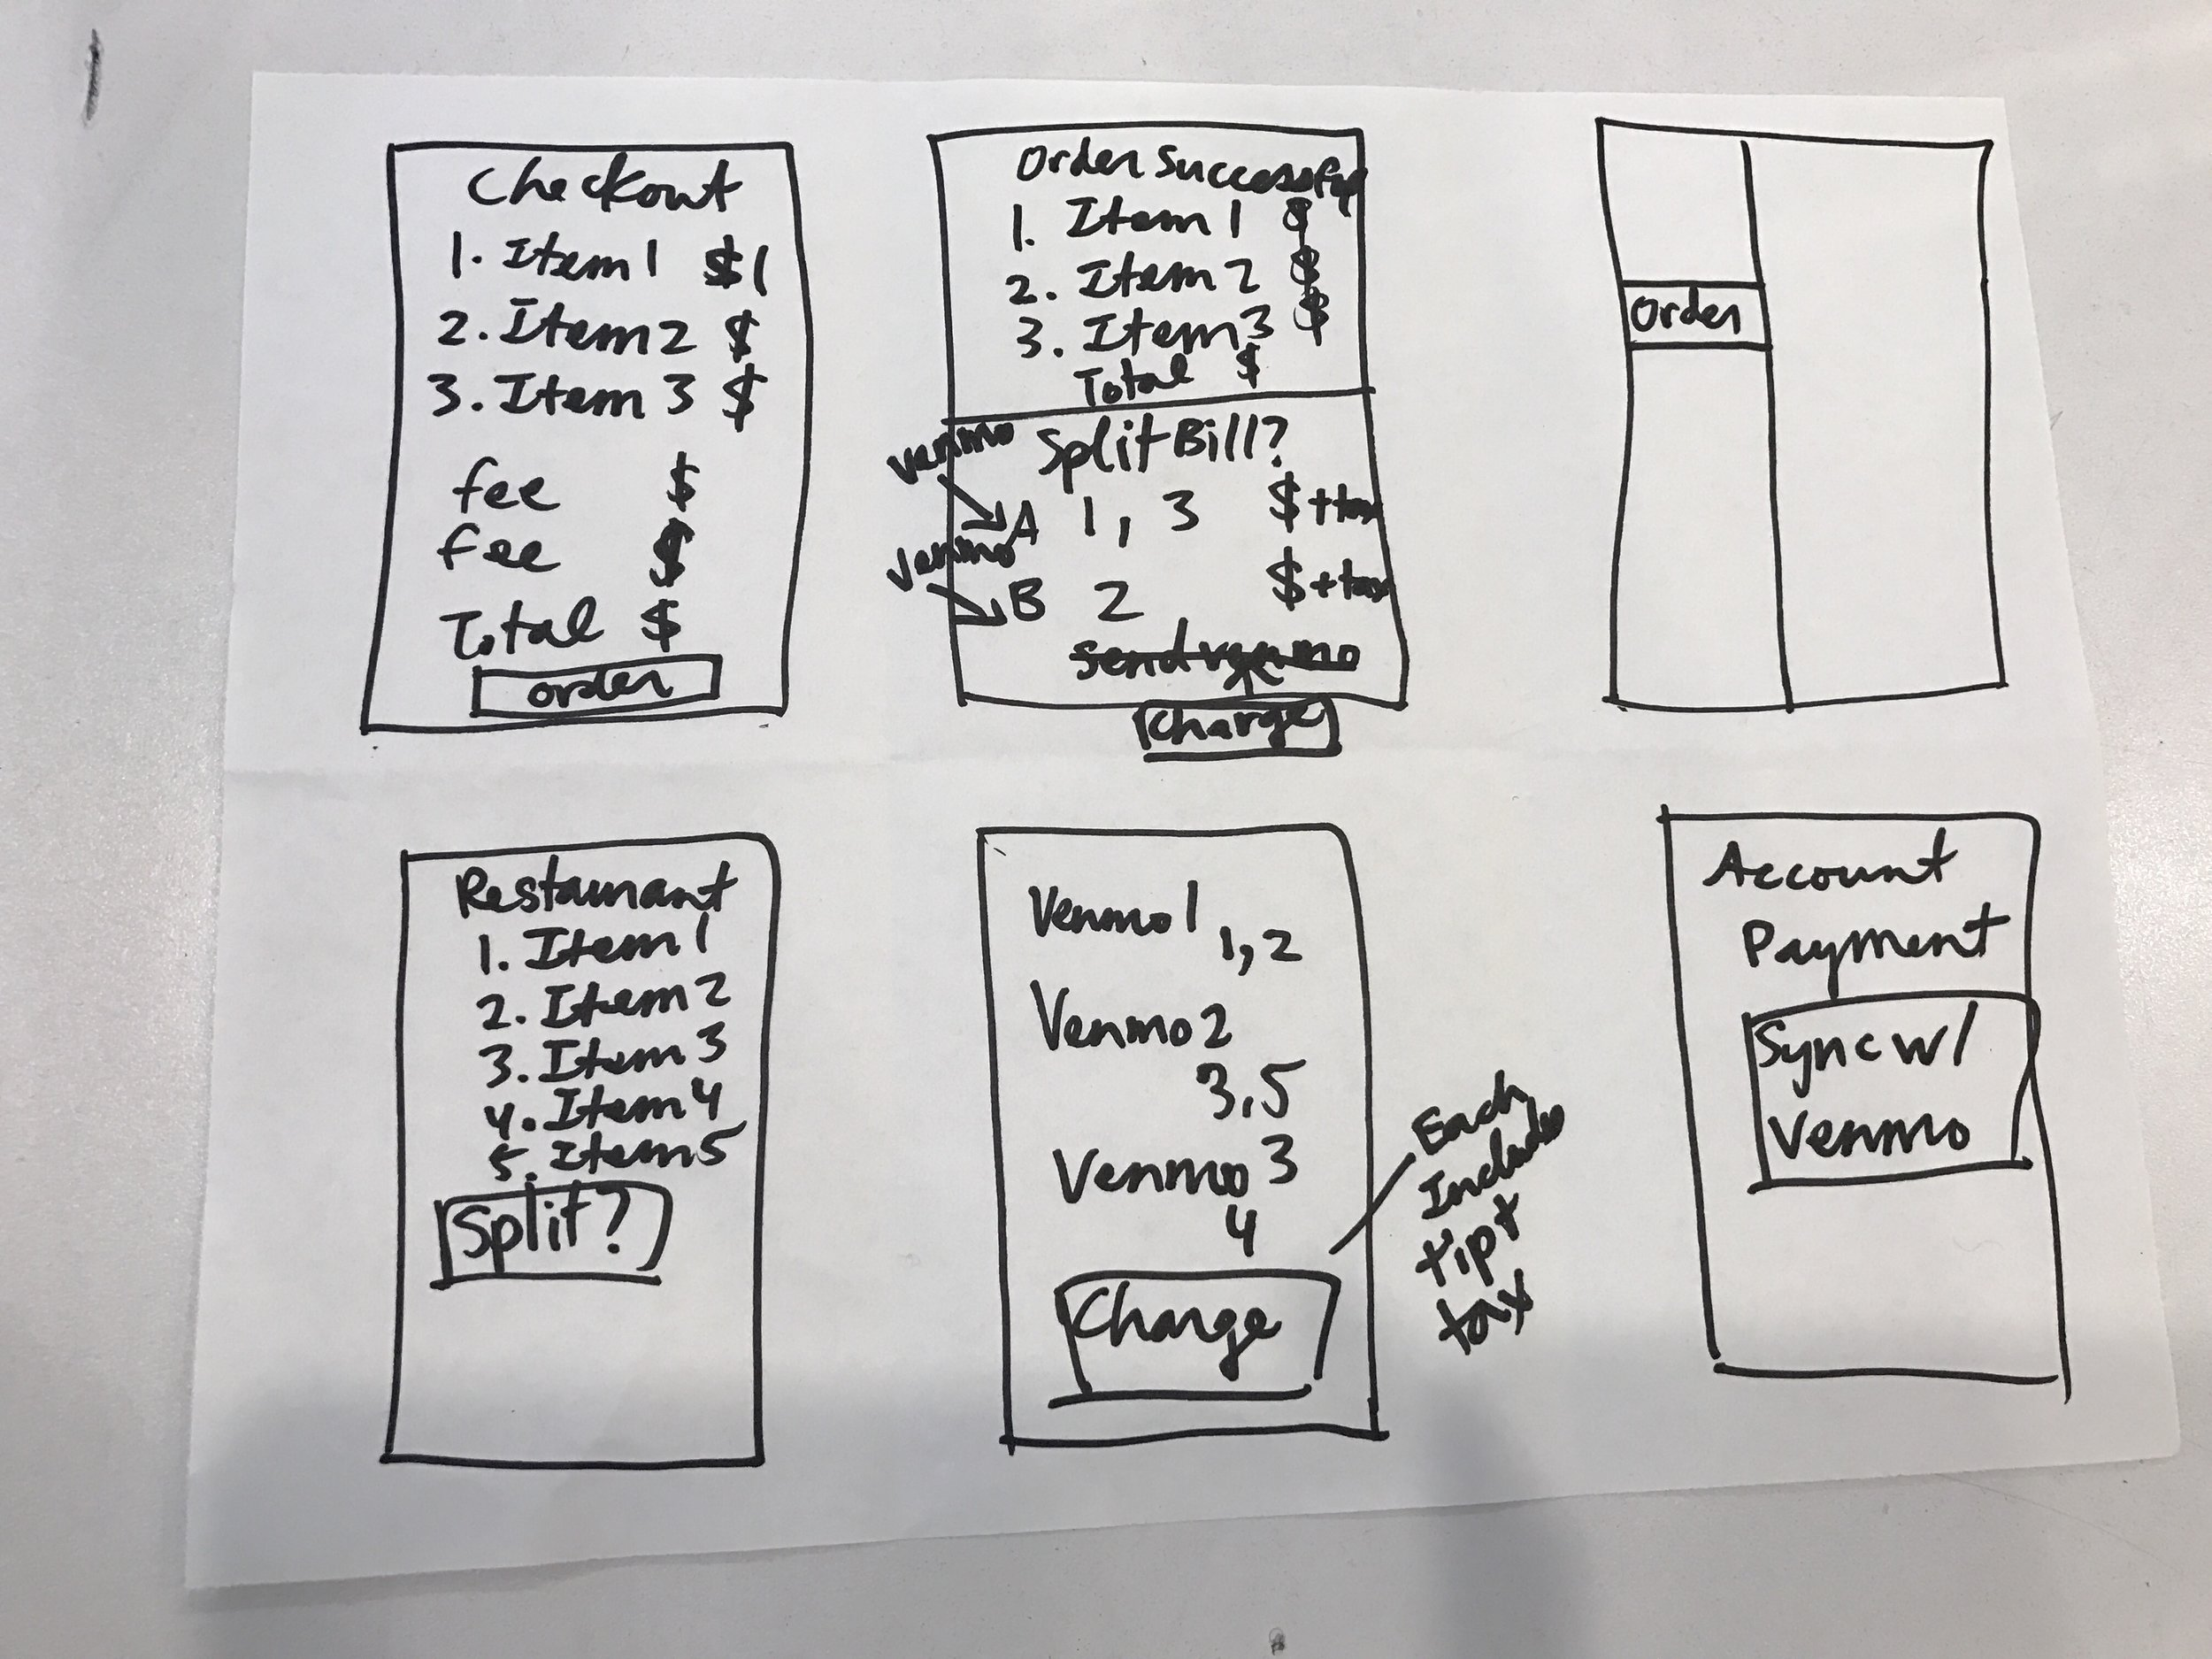 Coming up with multiple ideas for the feature